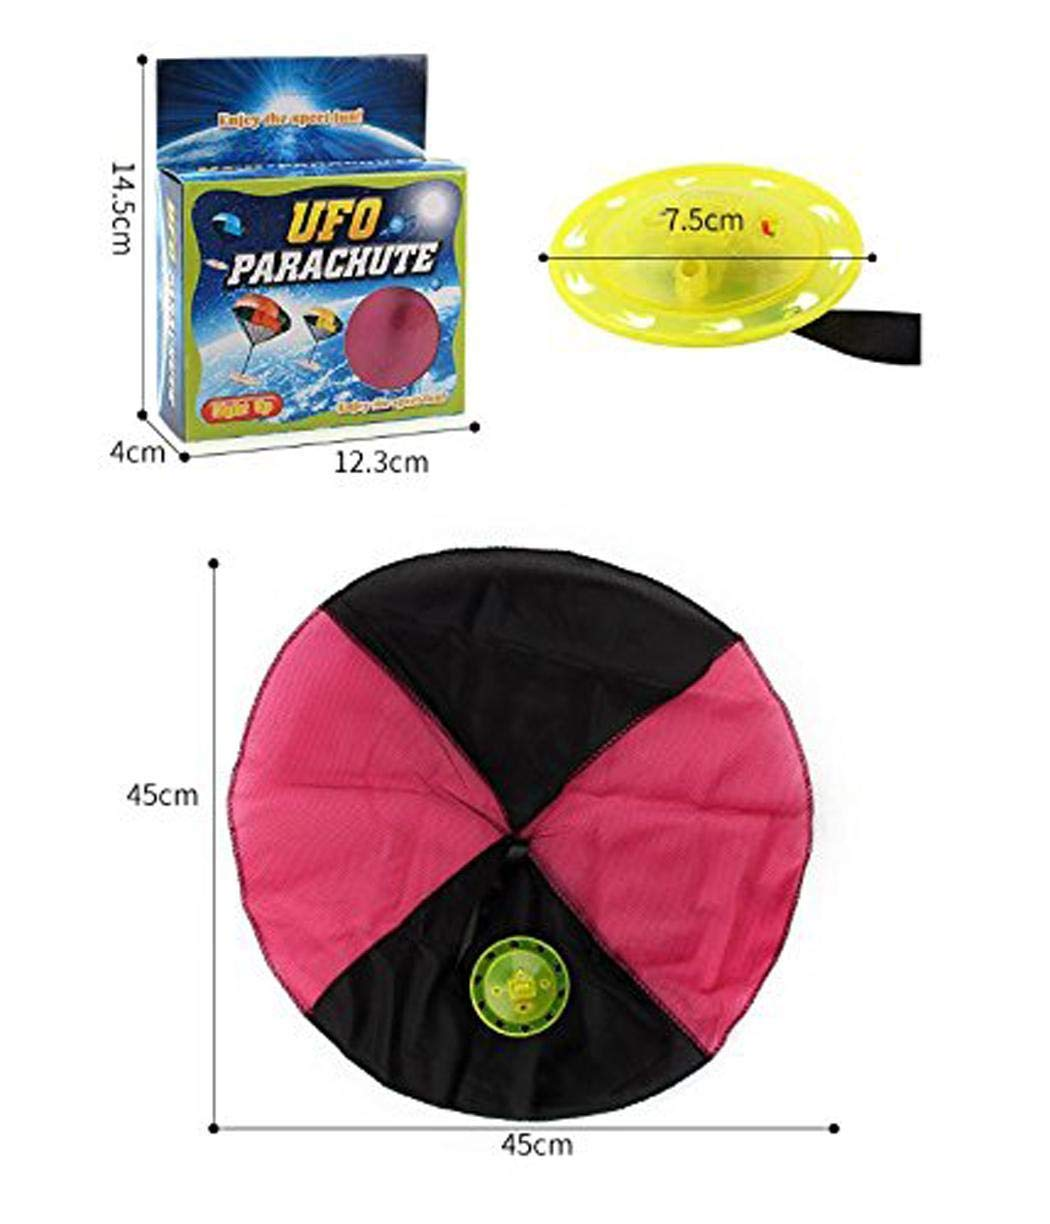 Bifast Hand Throwing Flash Light Frisbee Parachute Toy Child Game Gift Toy by Bifast (Image #4)